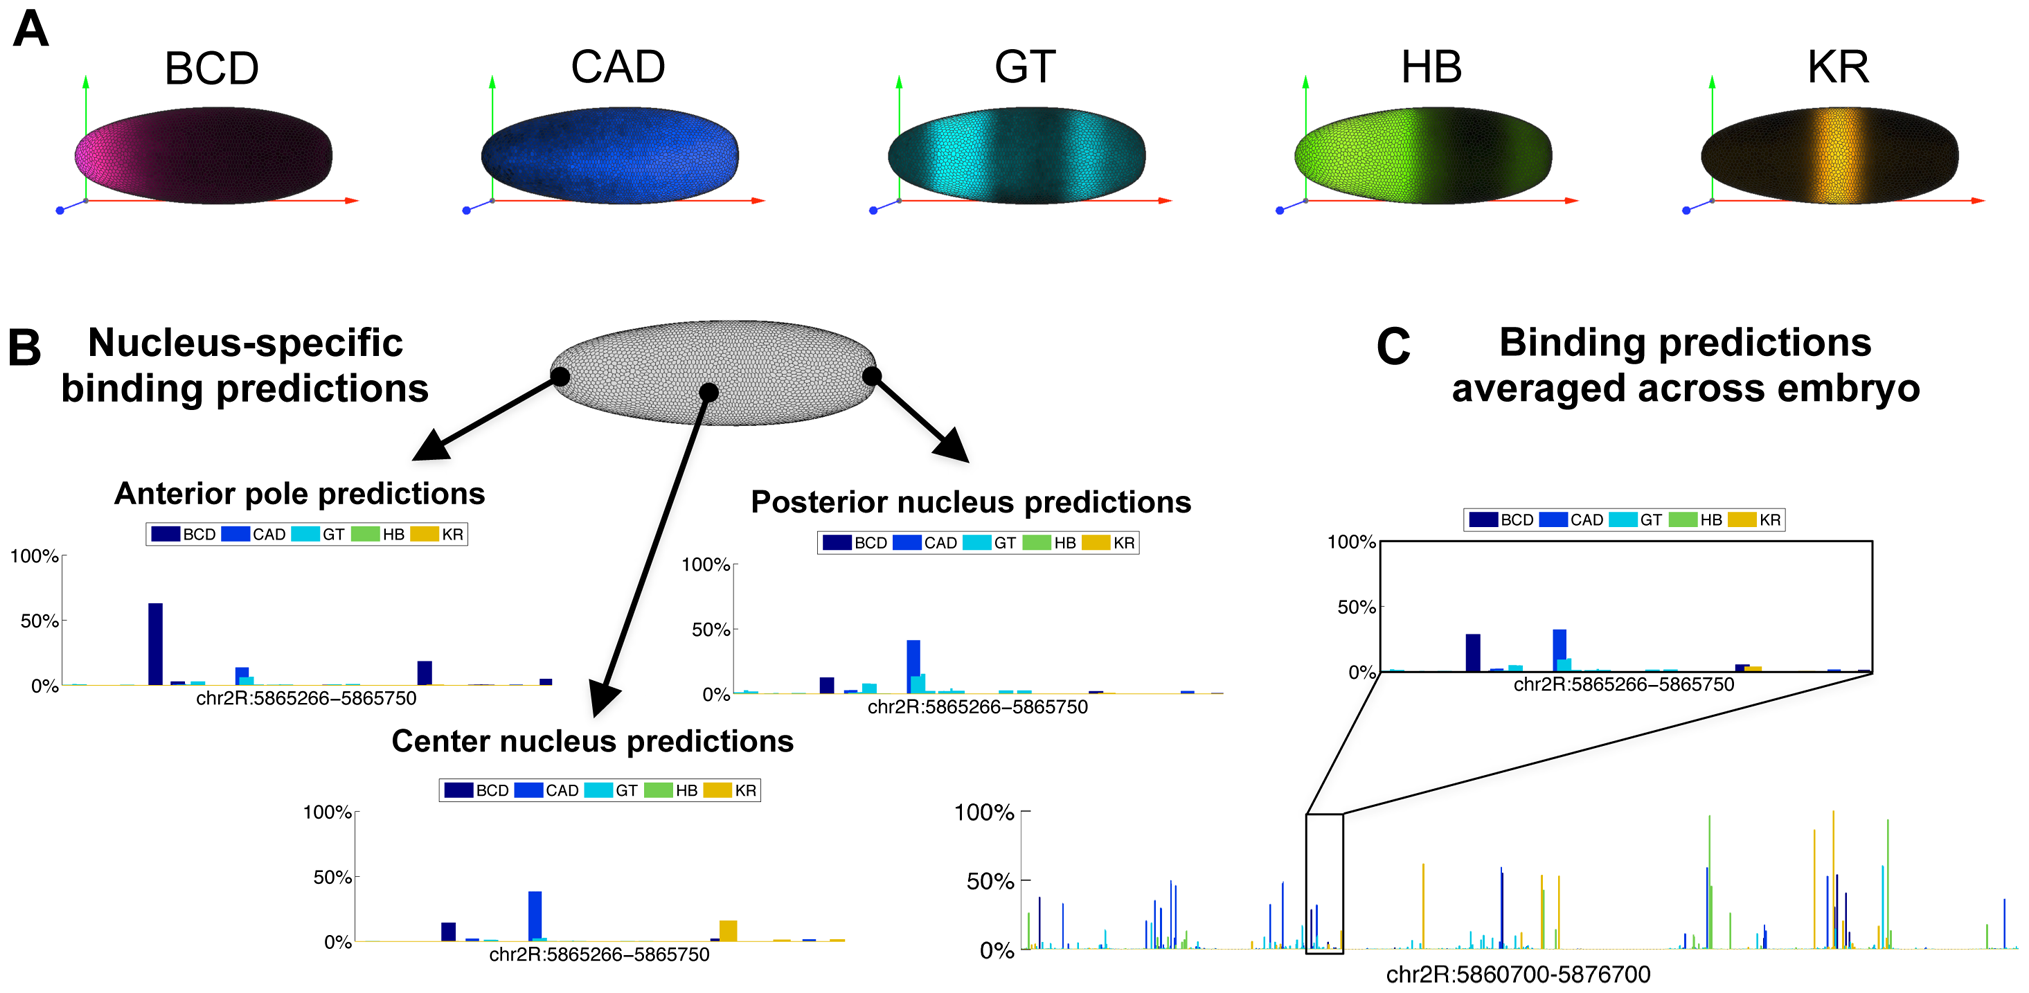 Predicting binding in single-nucleus resolution.